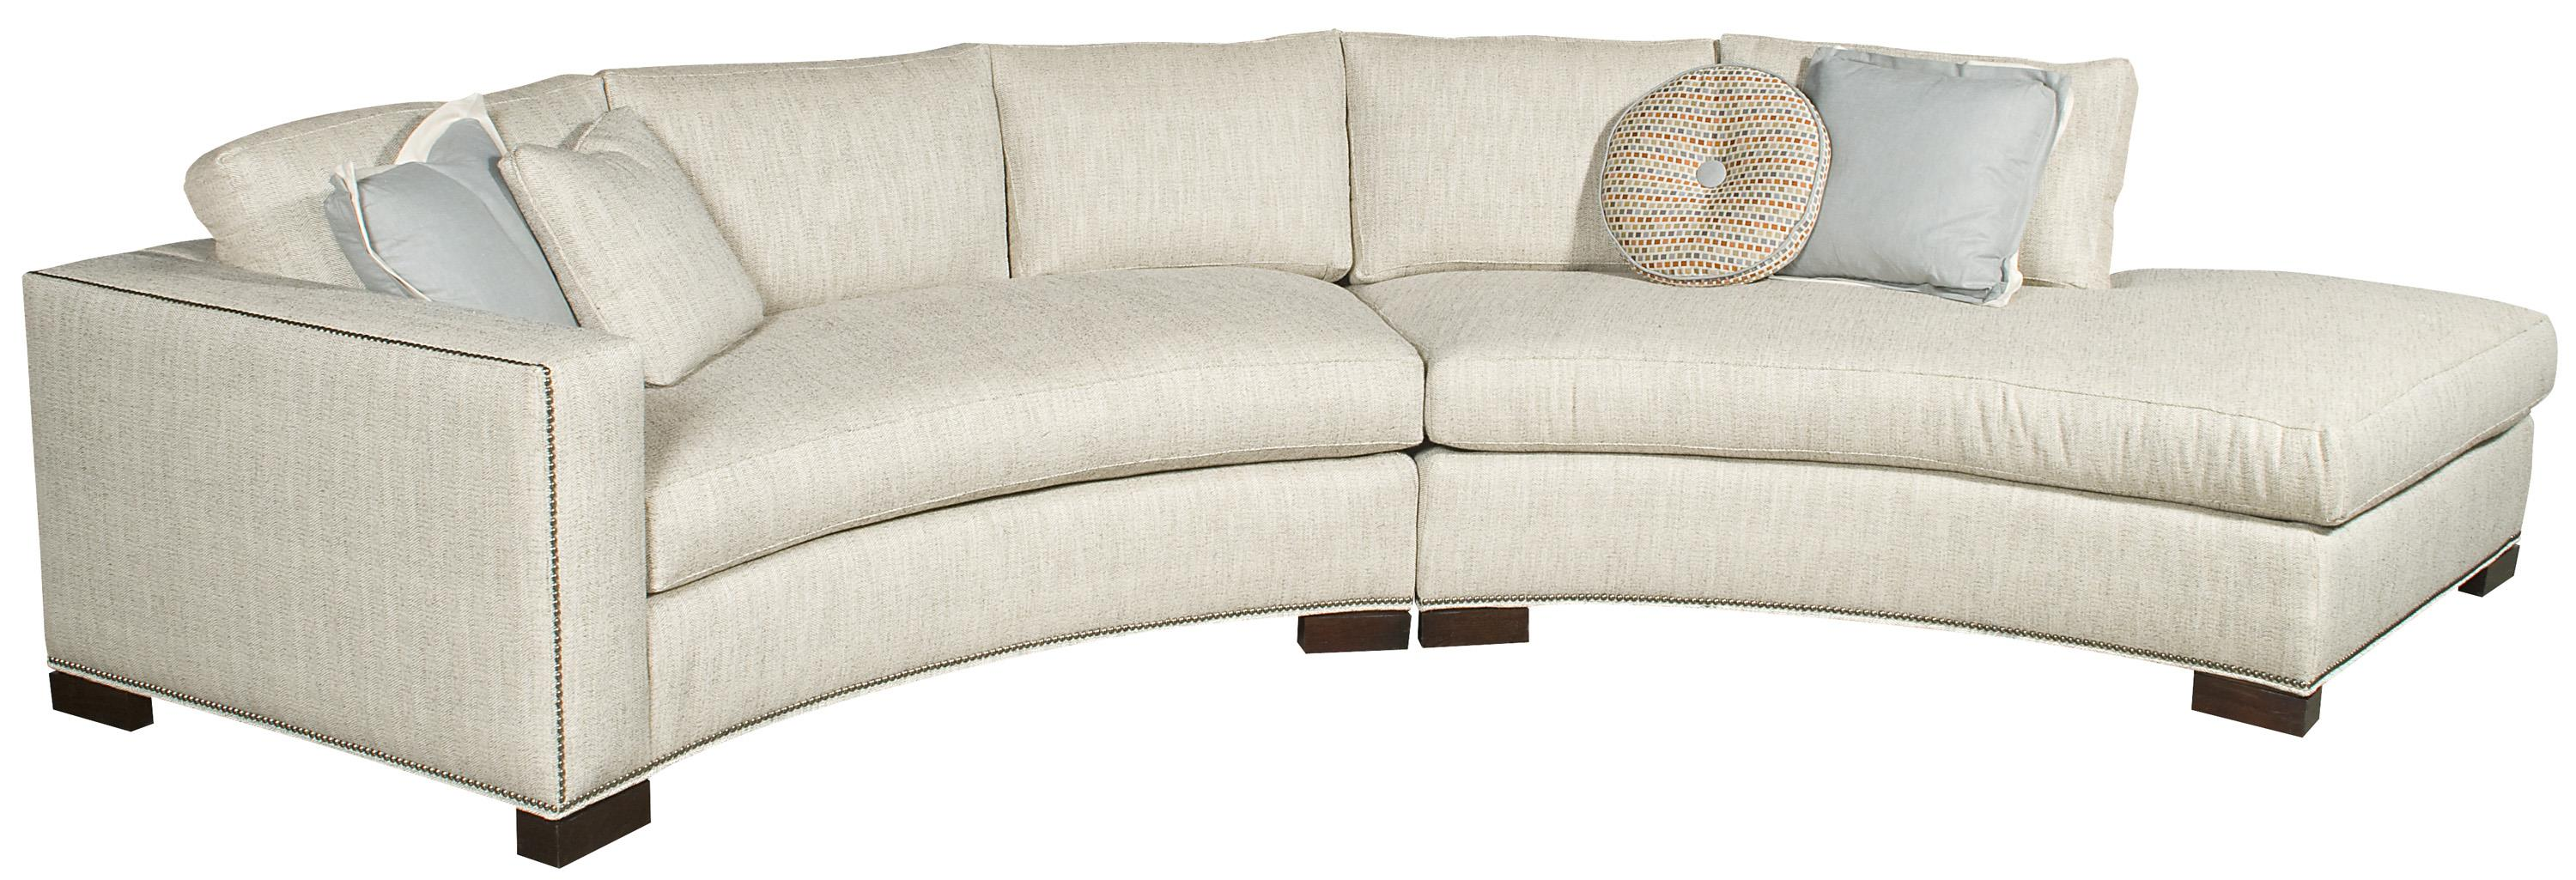 Michael Weiss Bennett Sectional by Vanguard Furniture at Baer's Furniture